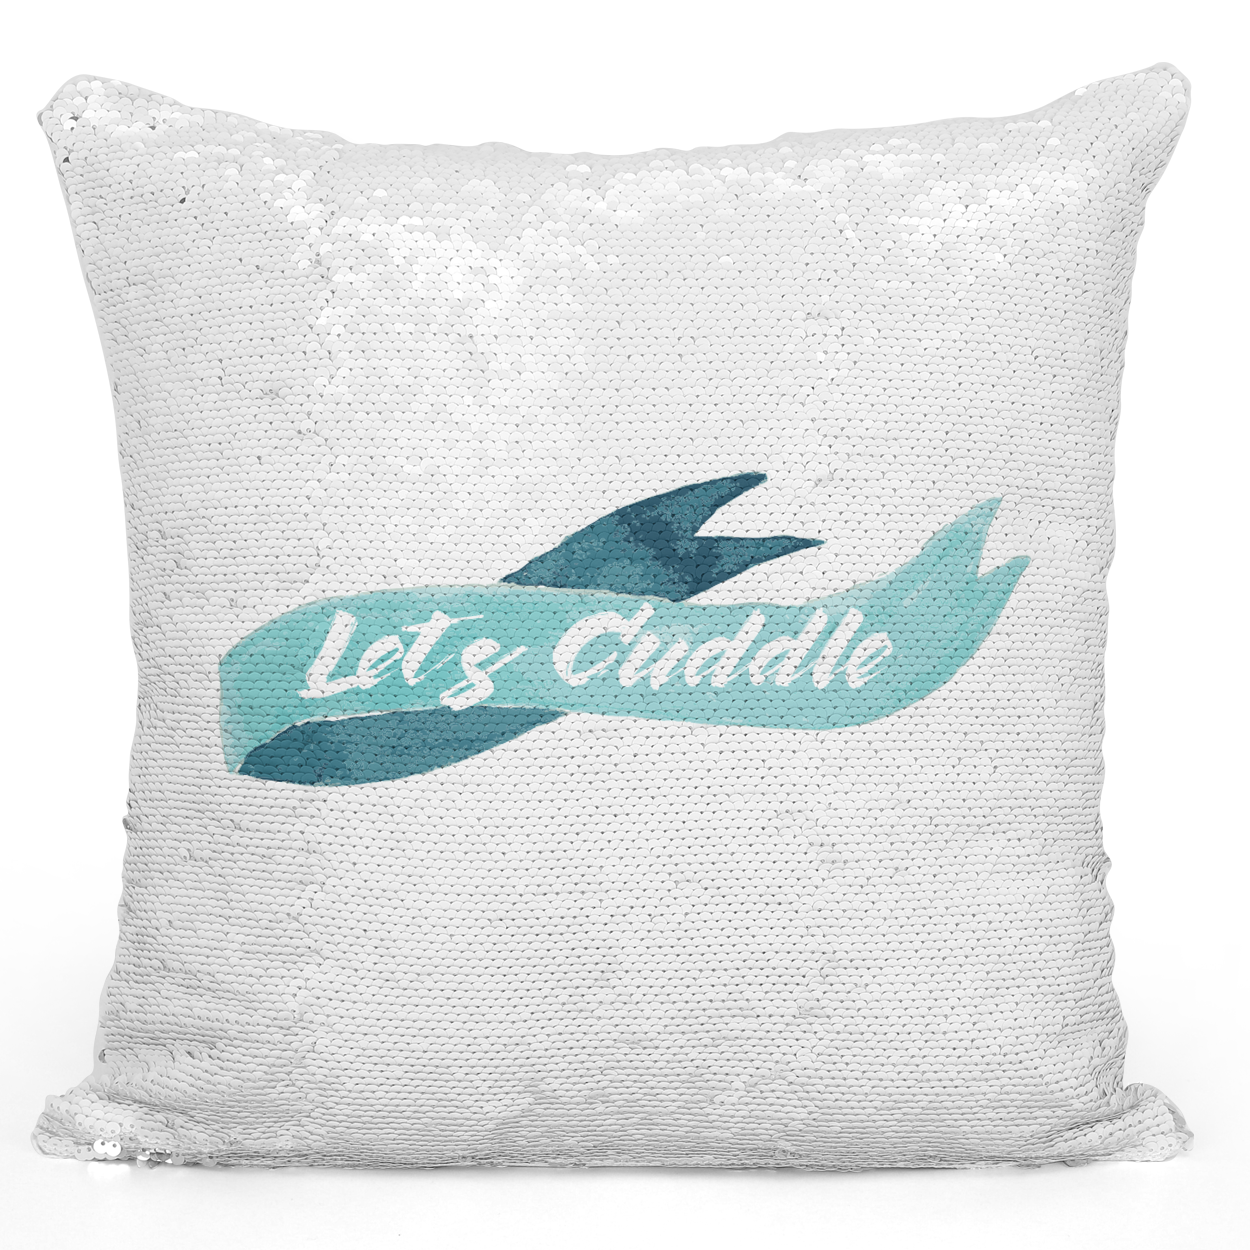 Sequin Pillow Magic Mermaid Throw Pillow Lets Cuddle Blue Watercolor Ribbon - Durable White 16 x 16 inch Square Home Office Decor Accent Pillow Loud Universe